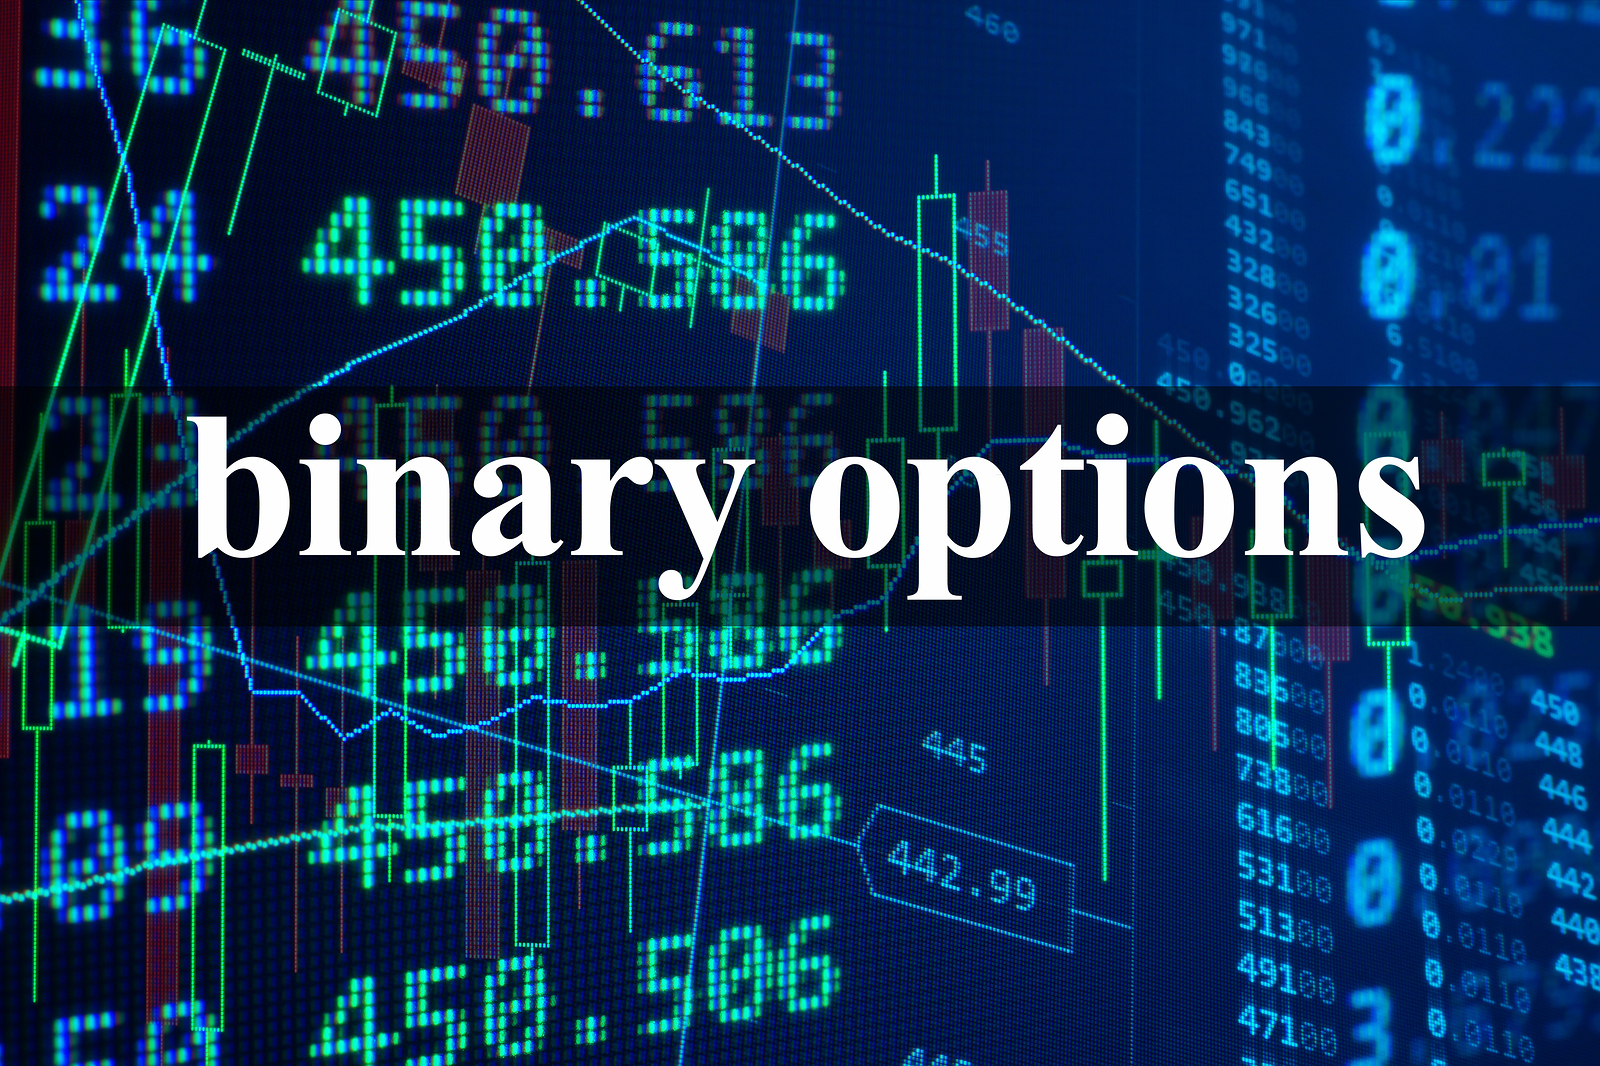 I lost money to binary options comments